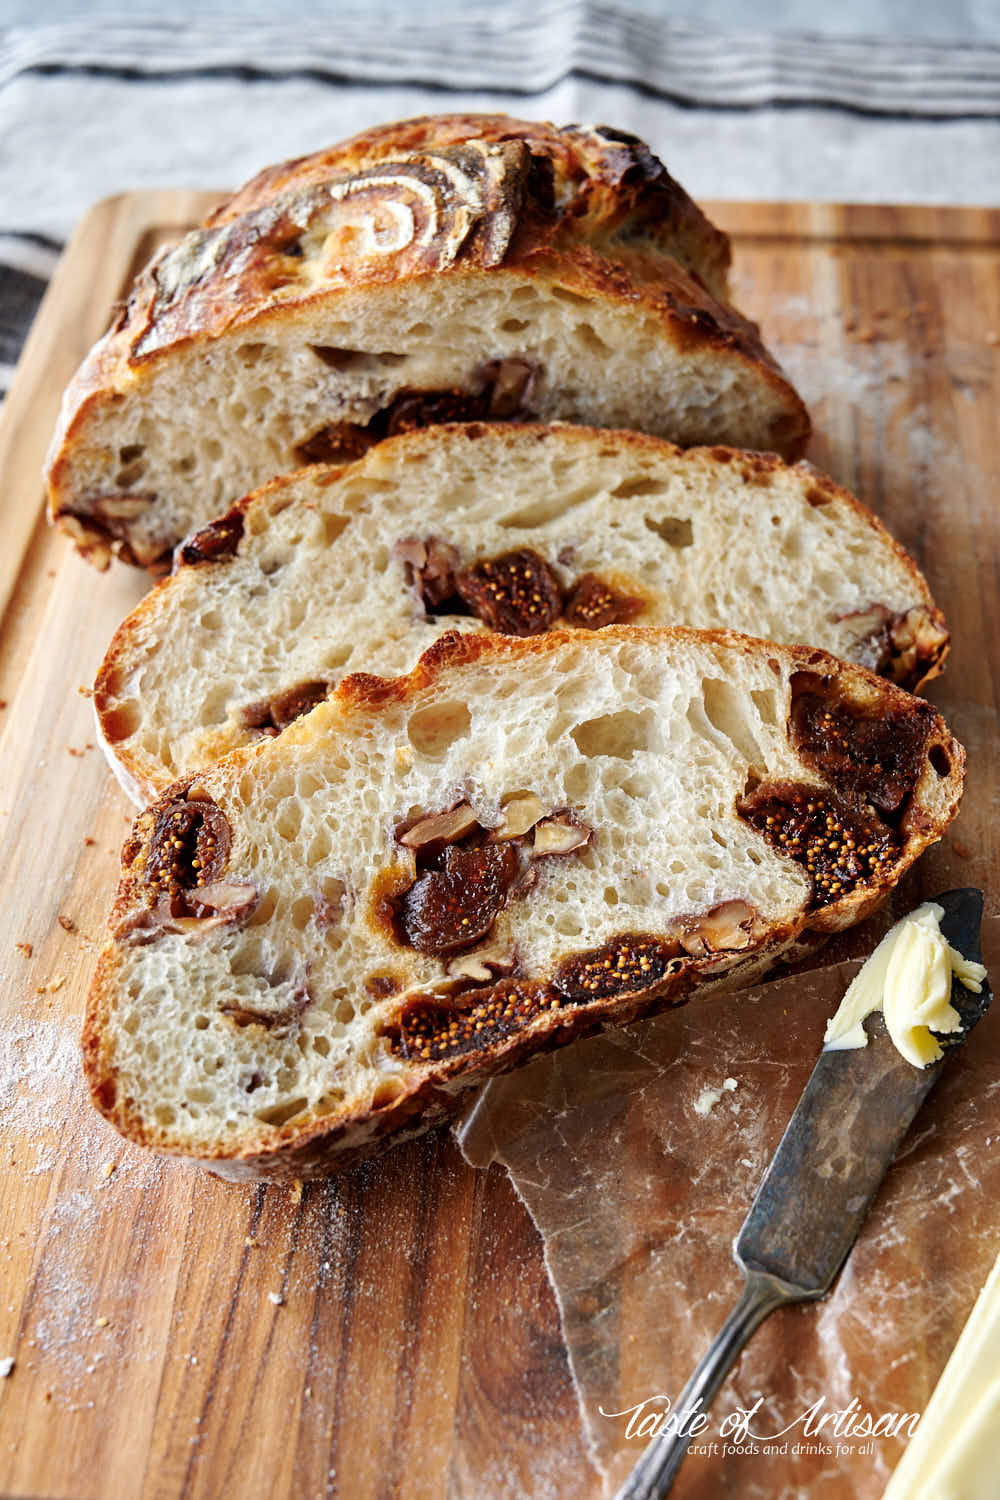 Close u p of slices of sourdough bread with chopped walnuts and quartered dates mixed in.